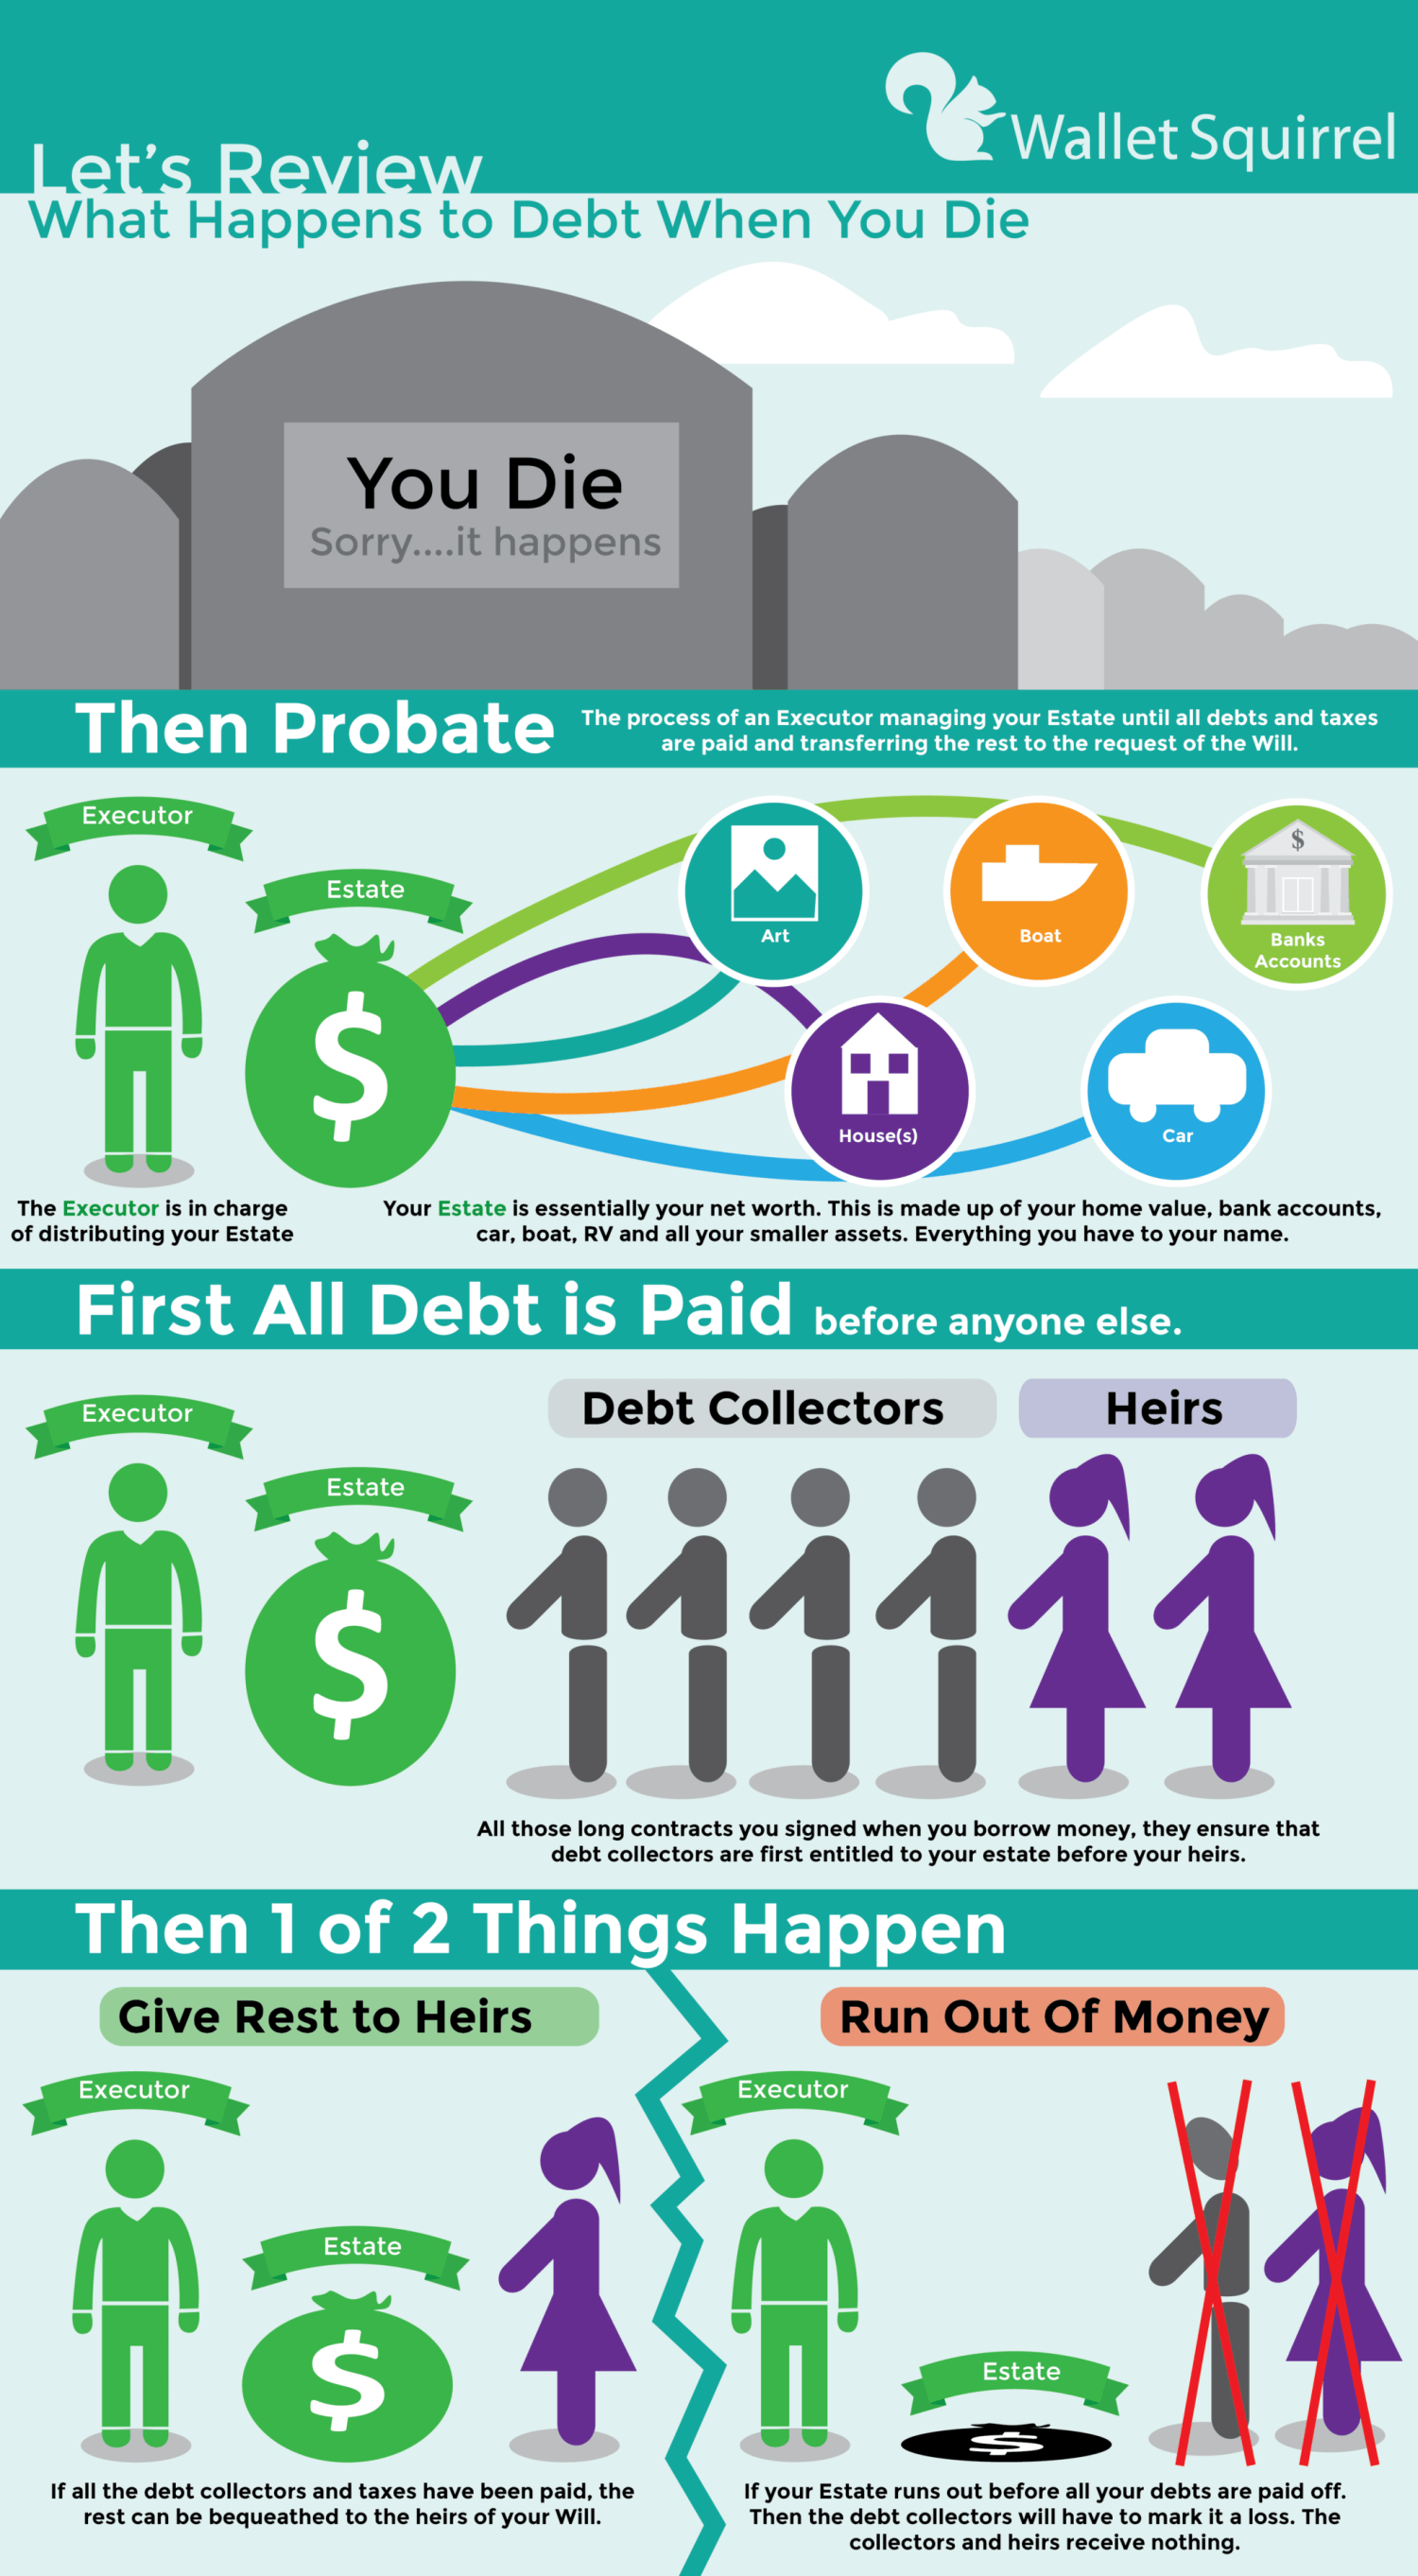 What Happens In A Youtube Minute Infographic: What Happens To Debt When You Die?